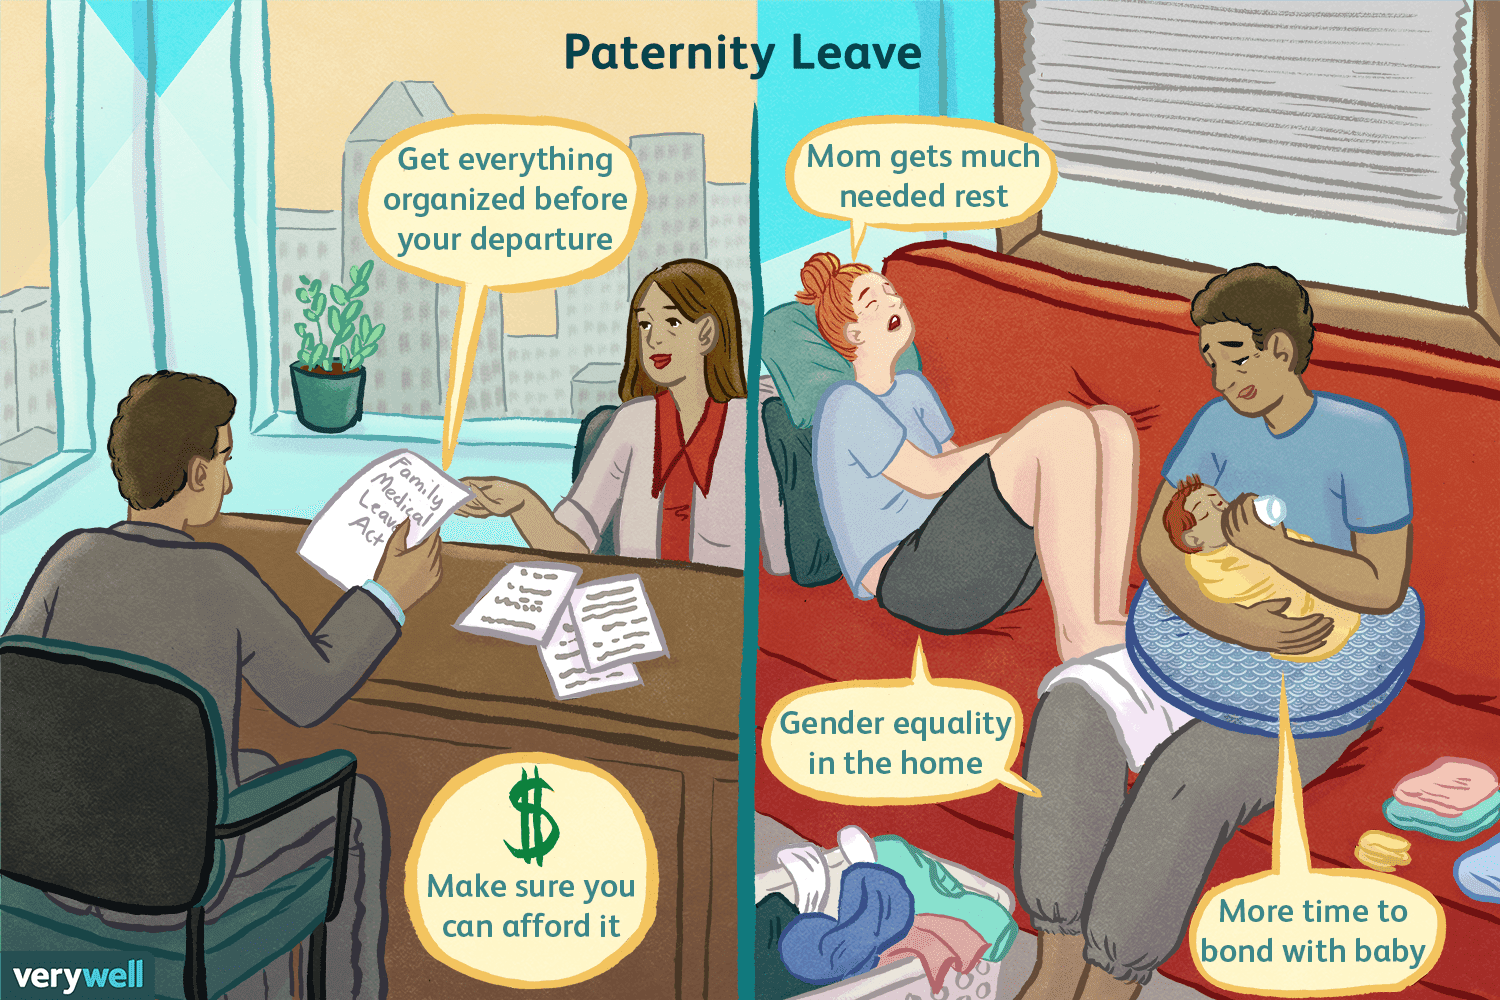 How Fathers Can Plan Their Paternity Leave